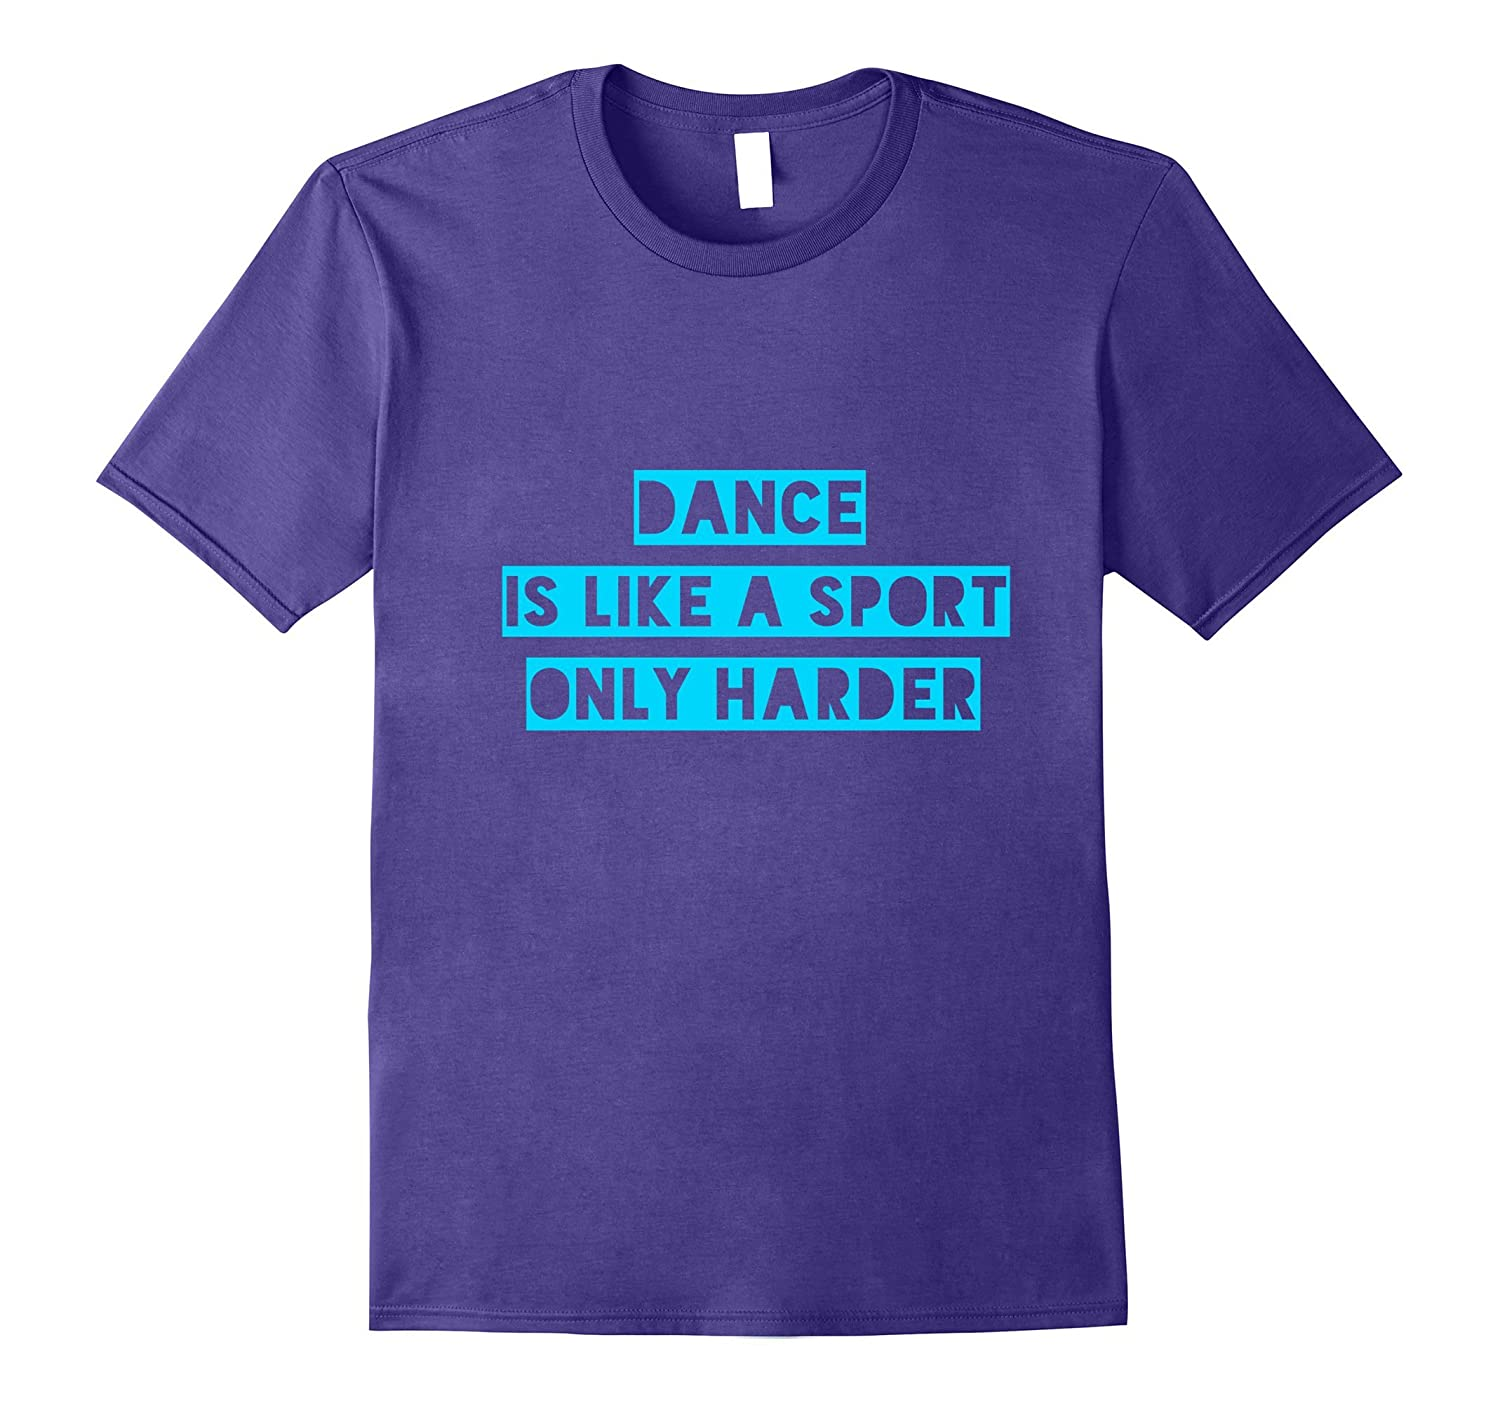 Dance is like a sport only harder t-shirt-PL